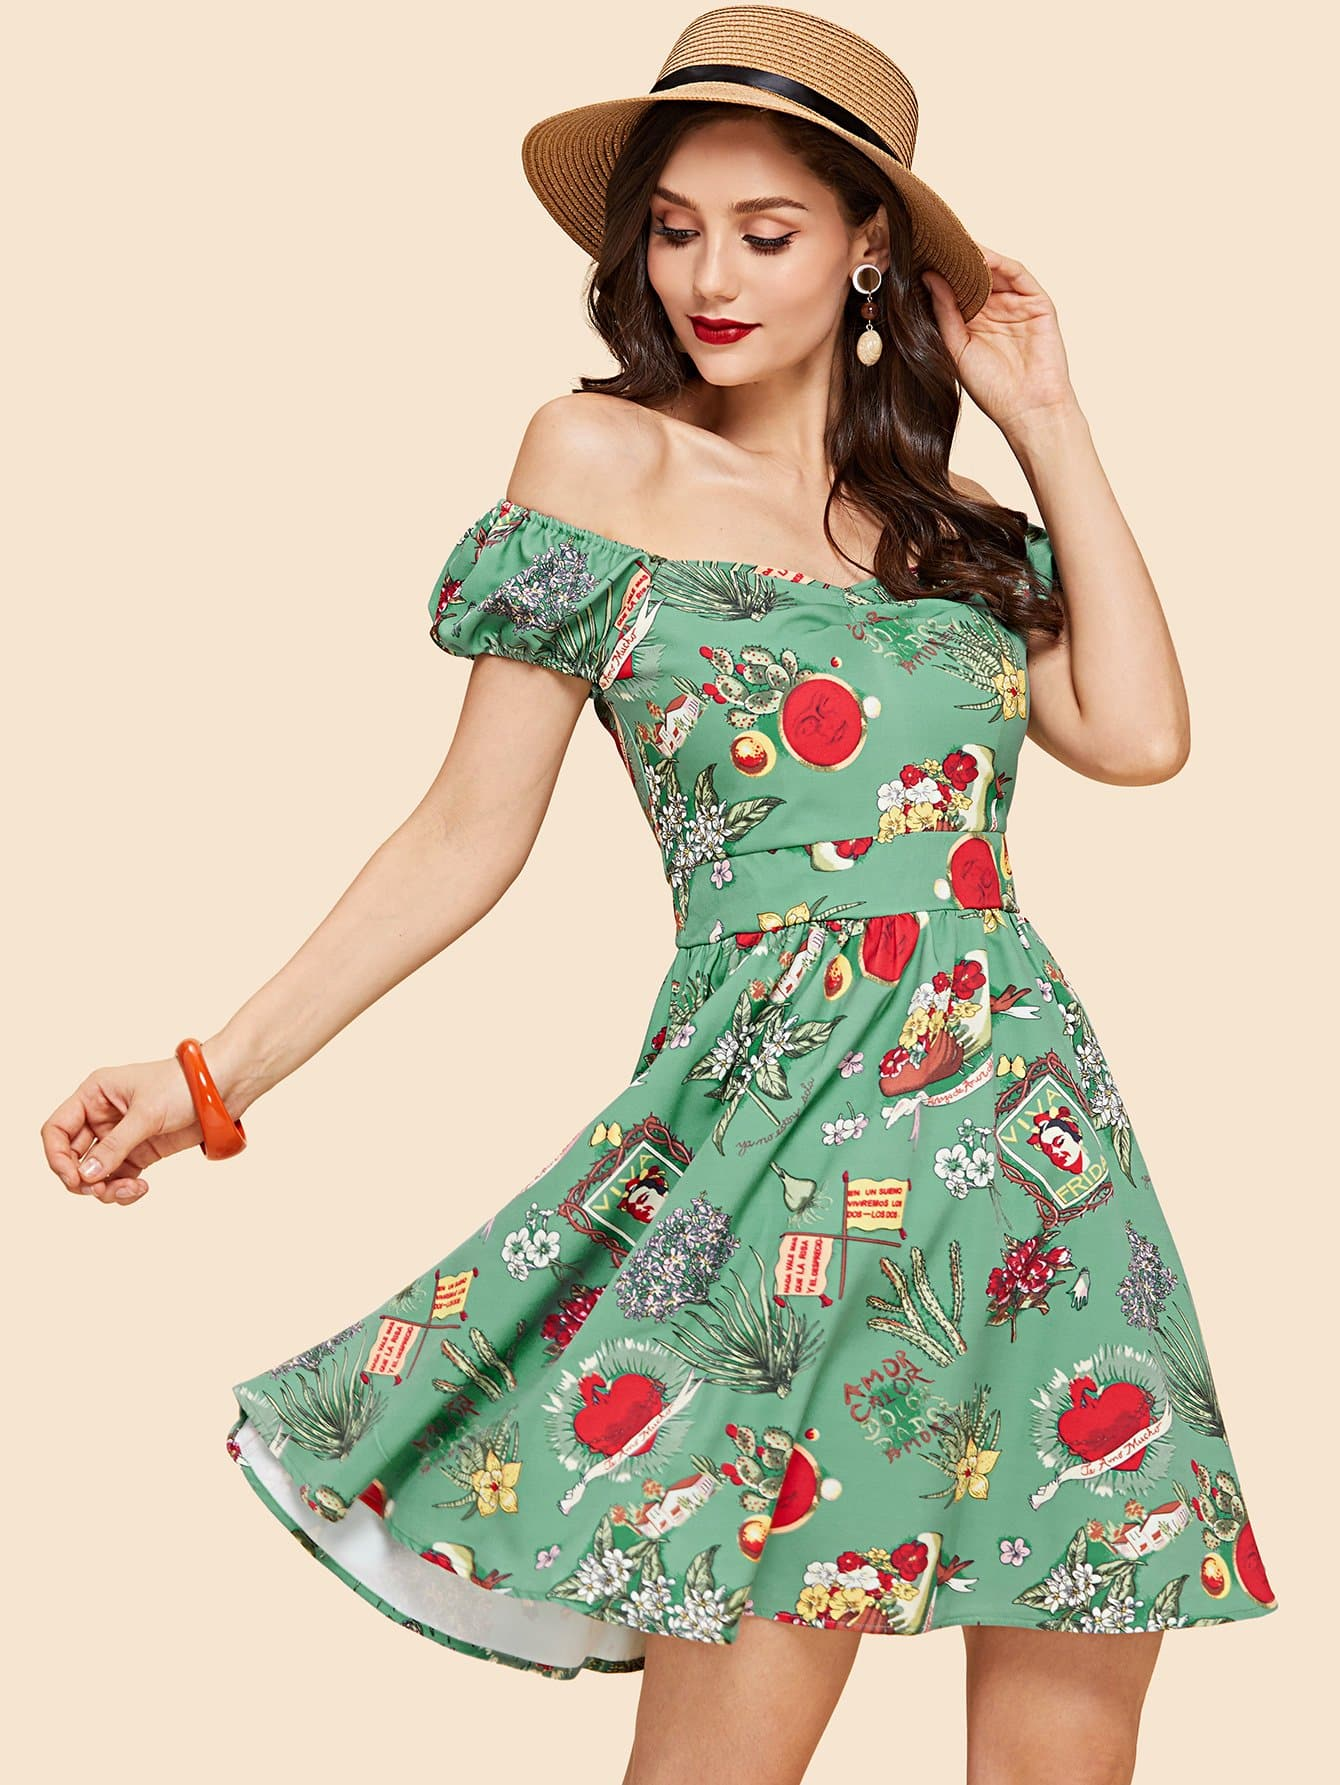 Buttoned Ruched Sweetheart Fit and Flare Dress lace overlay fit and flare dress